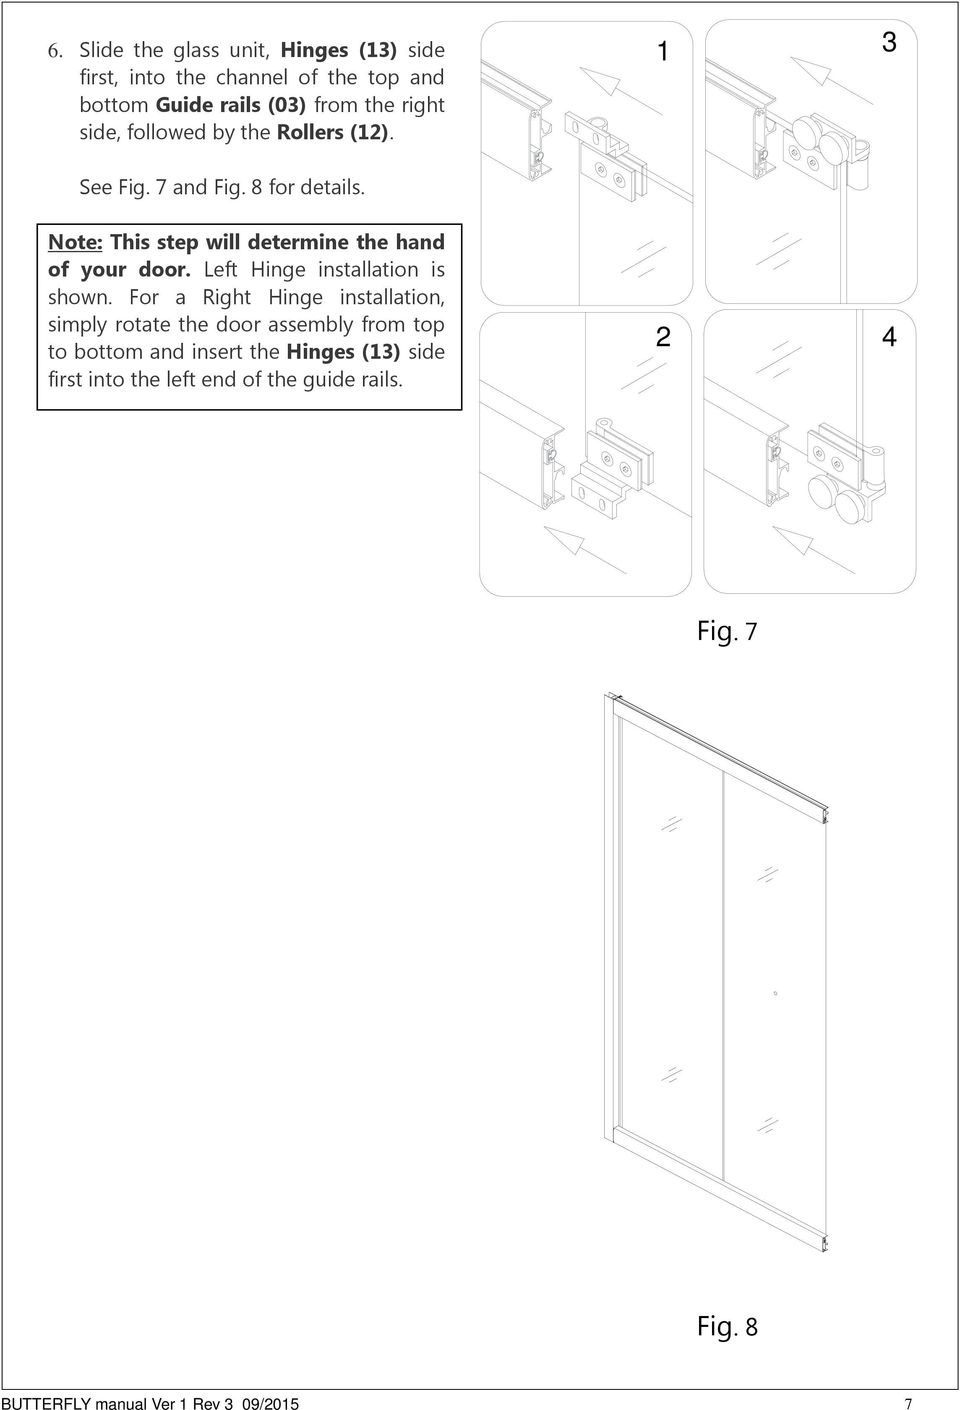 Note: This step will determine the hand of your door. Left Hinge installation is shown.